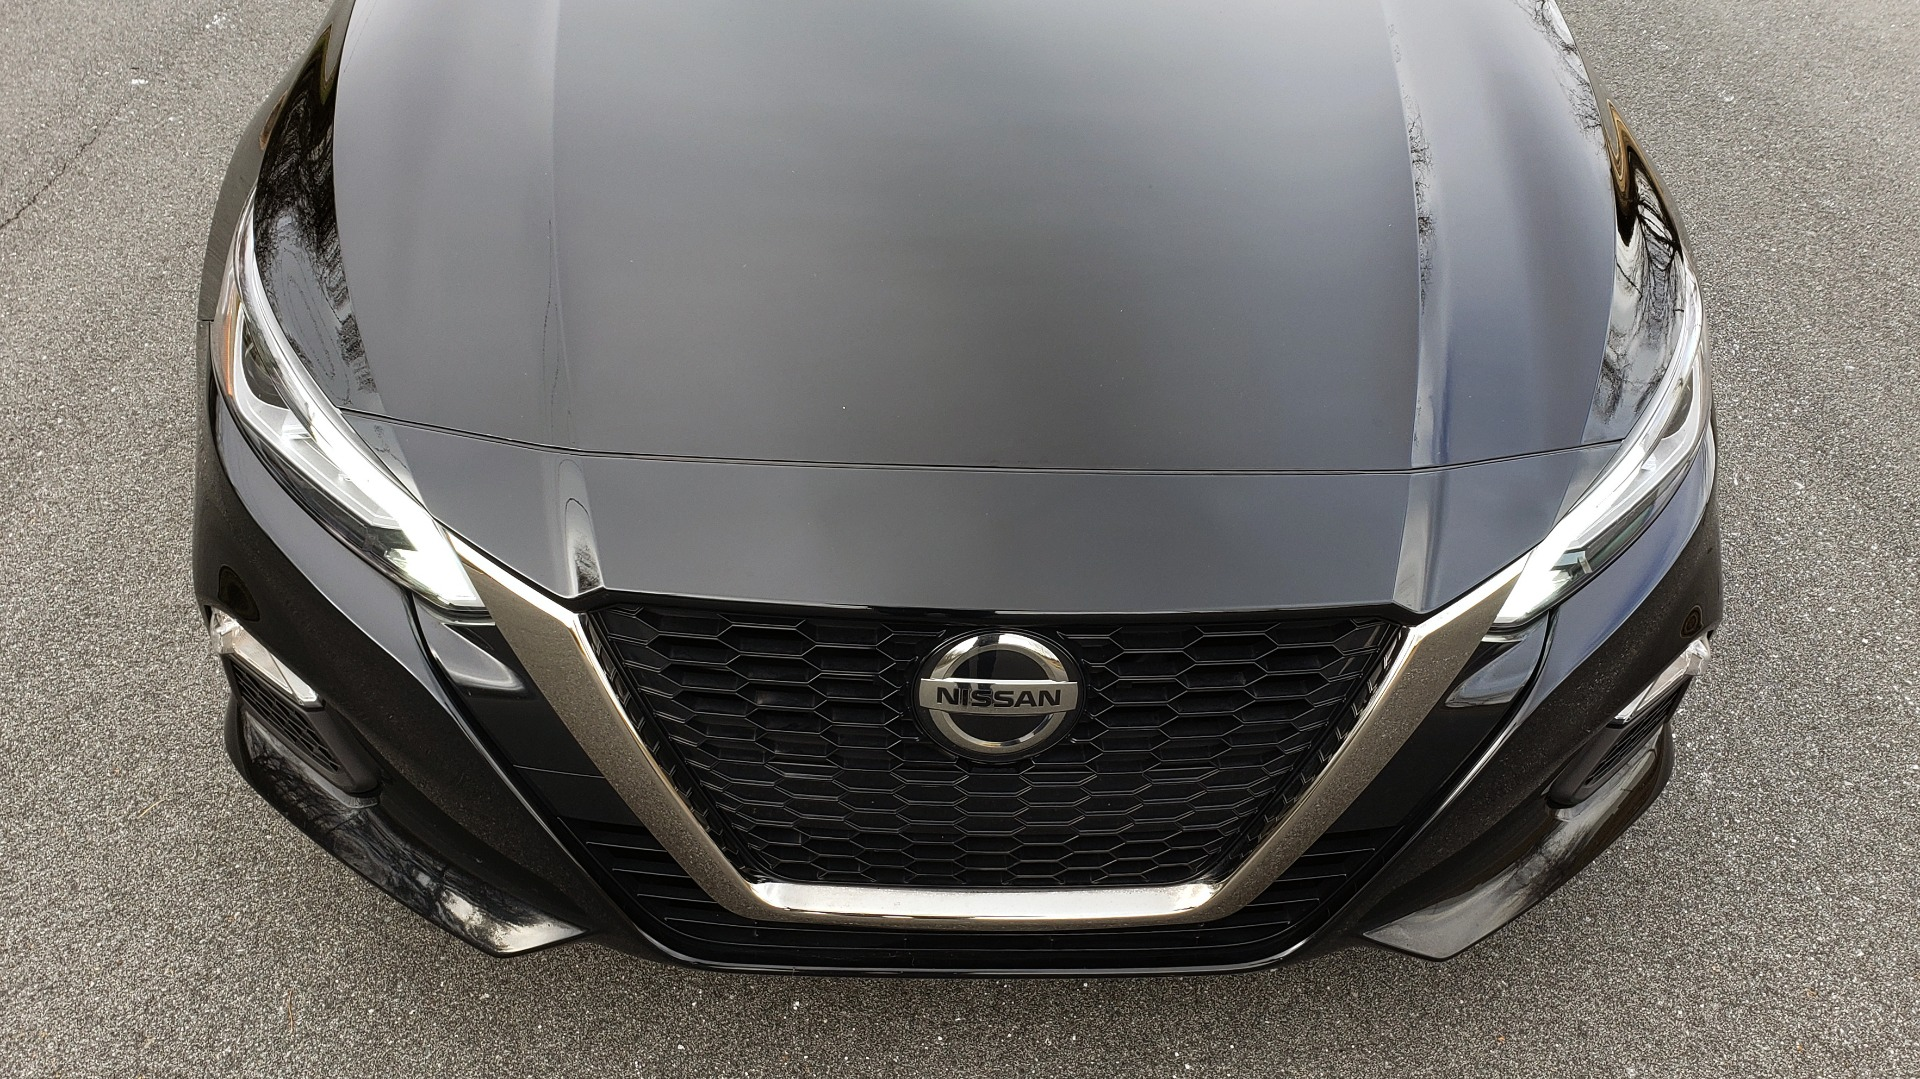 Used 2019 Nissan ALTIMA 2.5 SR PREMIUM / 2.5L / CVT TRANS / HTD STS / SUNROOF / REARVIEW for sale Sold at Formula Imports in Charlotte NC 28227 24